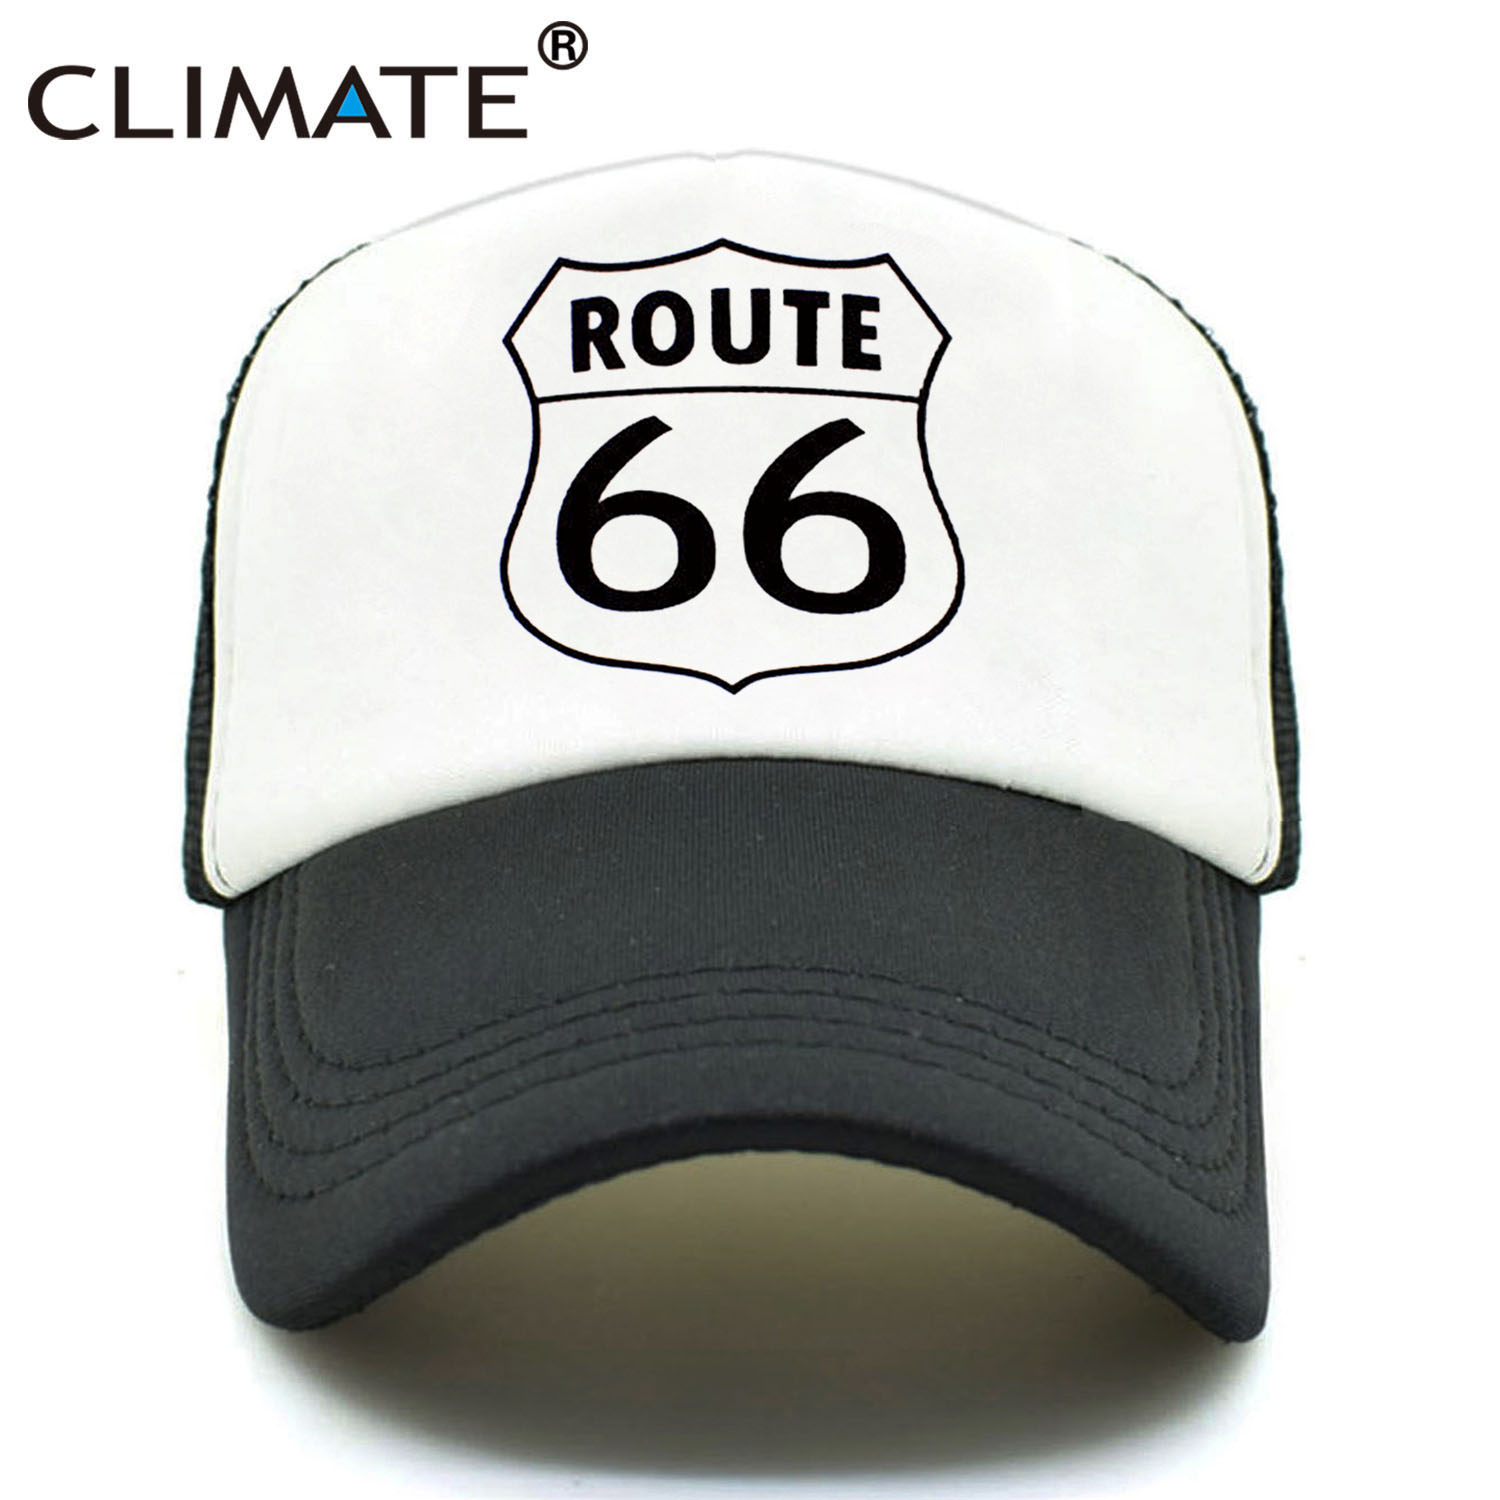 CLIMATE Men Women New Summer Trucker Caps ROUTE 66 Cool Summer Black Adult Cool Baseball Mesh Net Trucker Caps Hat for Men Adult climate men summer black mesh caps star wars bounty hunter fans cool summer baseball cap black net trucker caps hat for men